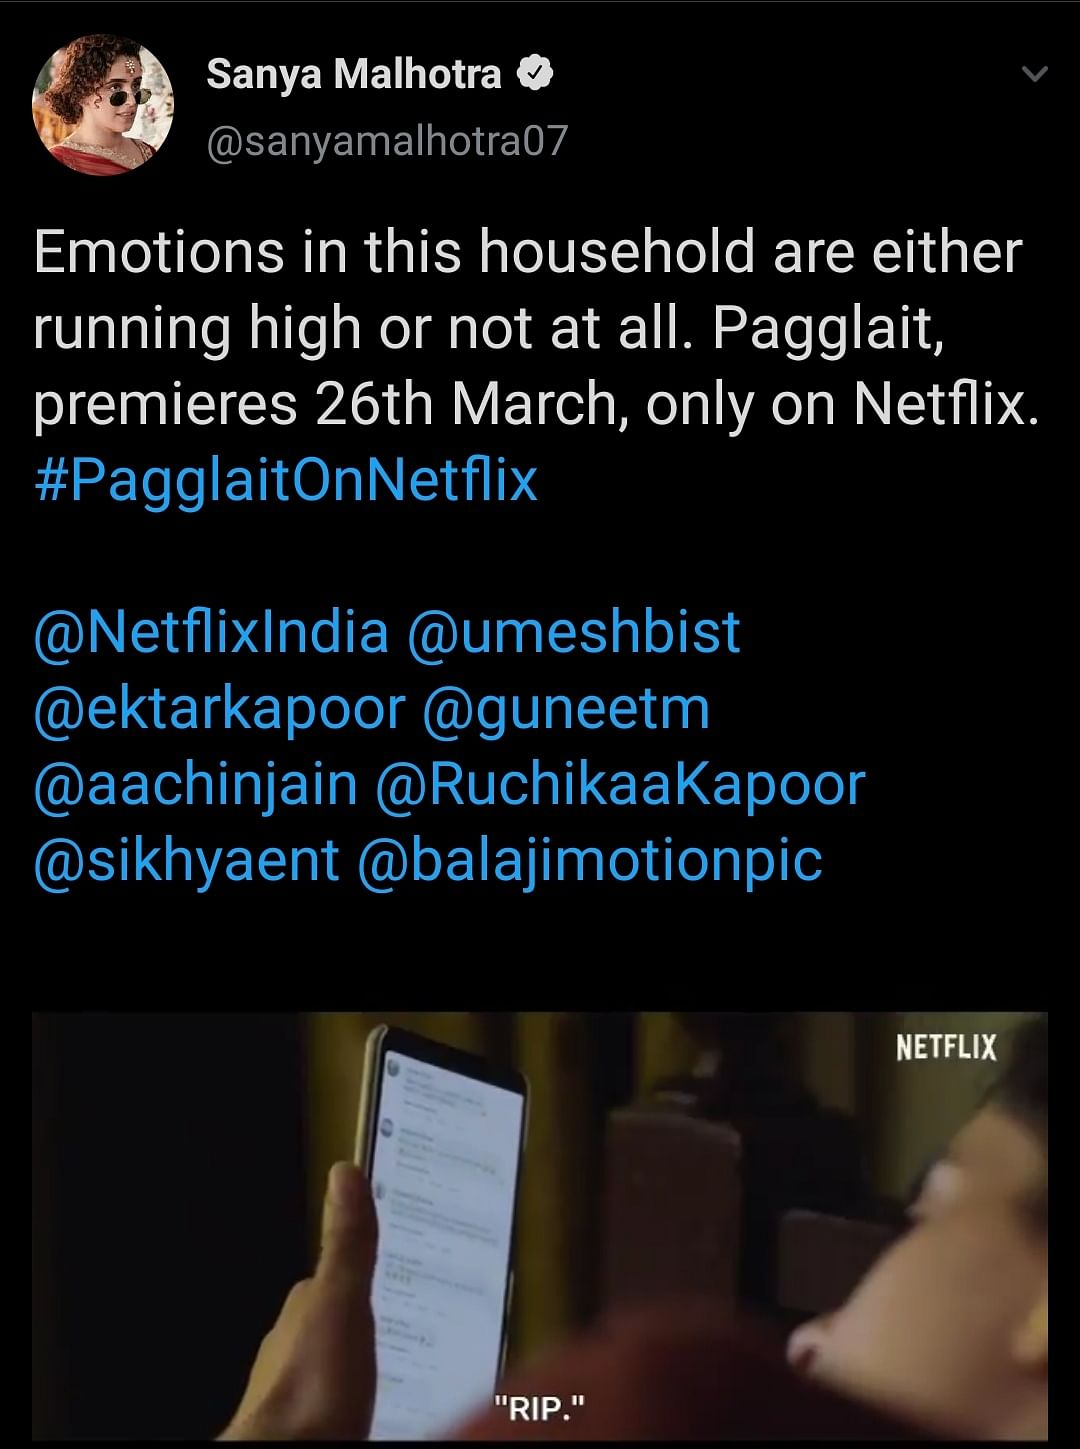 Sanya Malhotra took to Twitter to share the teaser for her upcoming release Pagglait